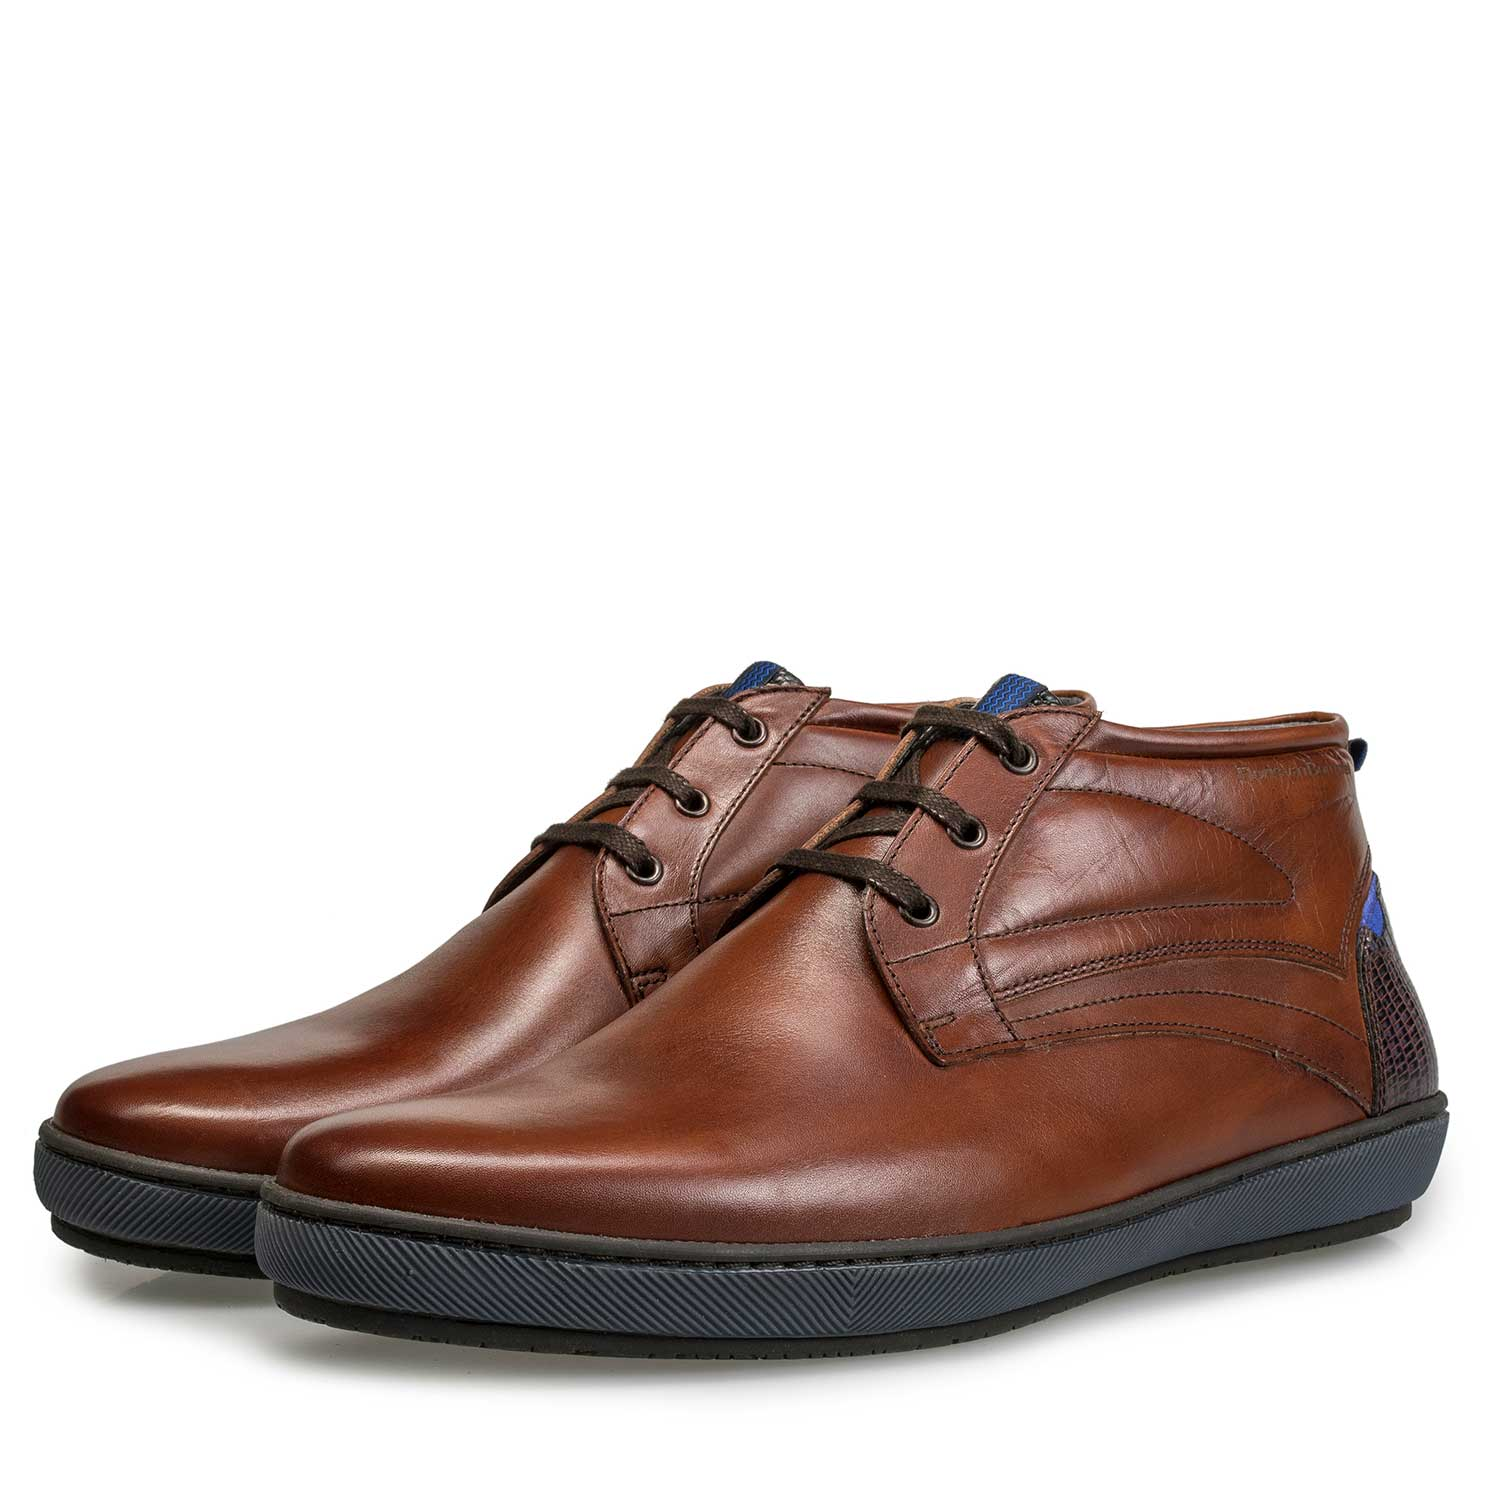 10074/03 - Dark cognac-coloured calf's leather boot